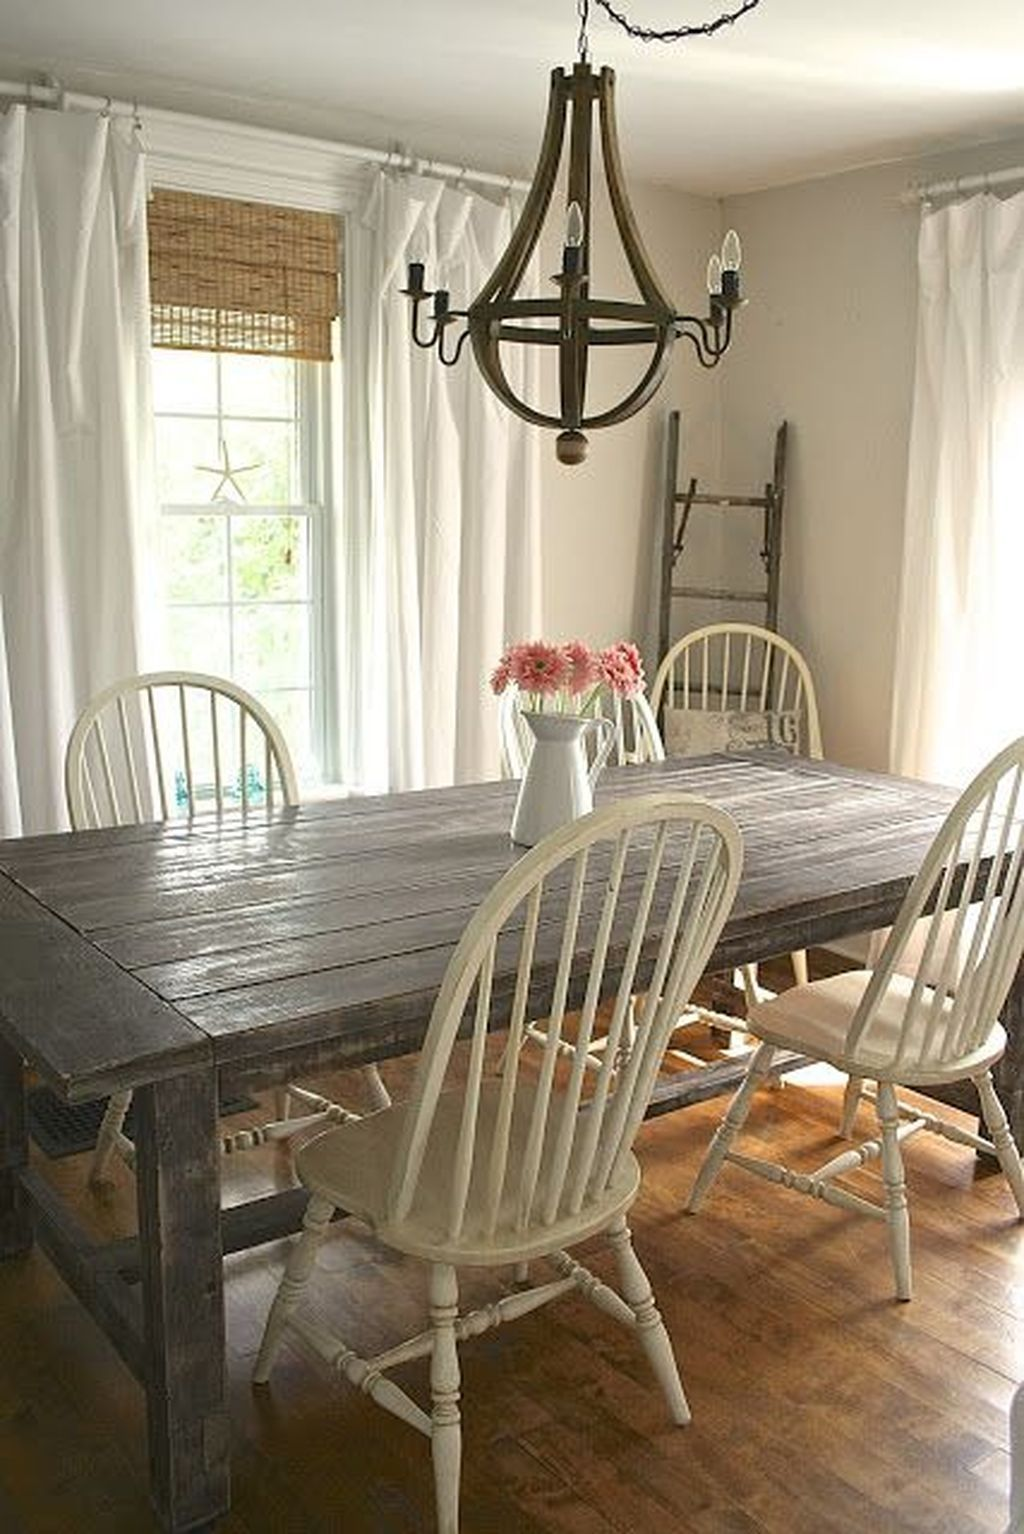 Farmhouse style decor is hot today Even